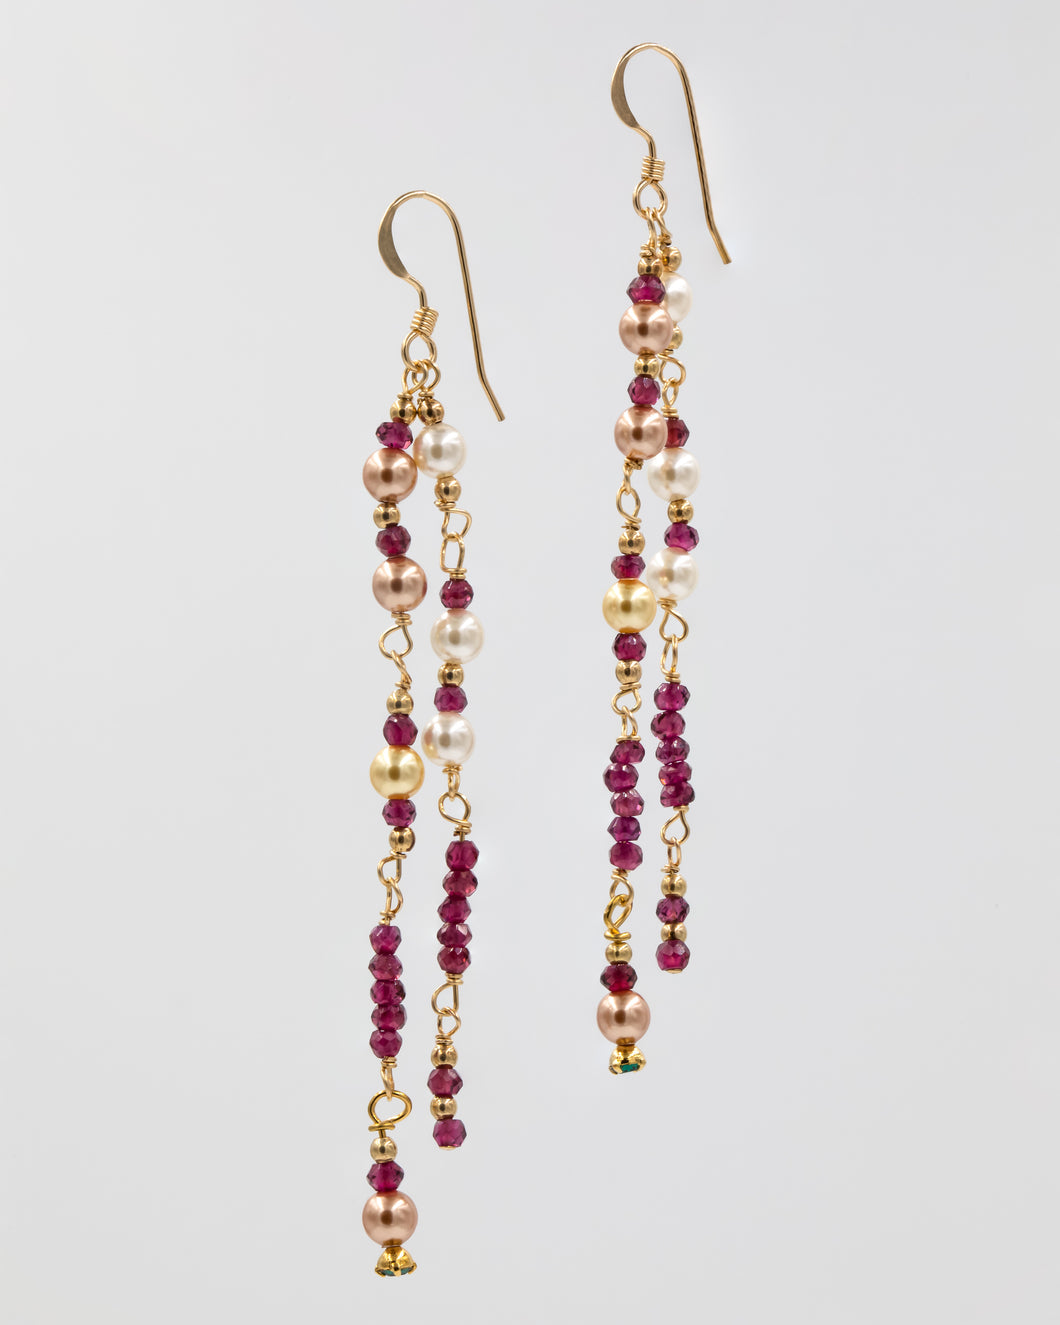 Picture of earrings with garnets and Swarovski pearls